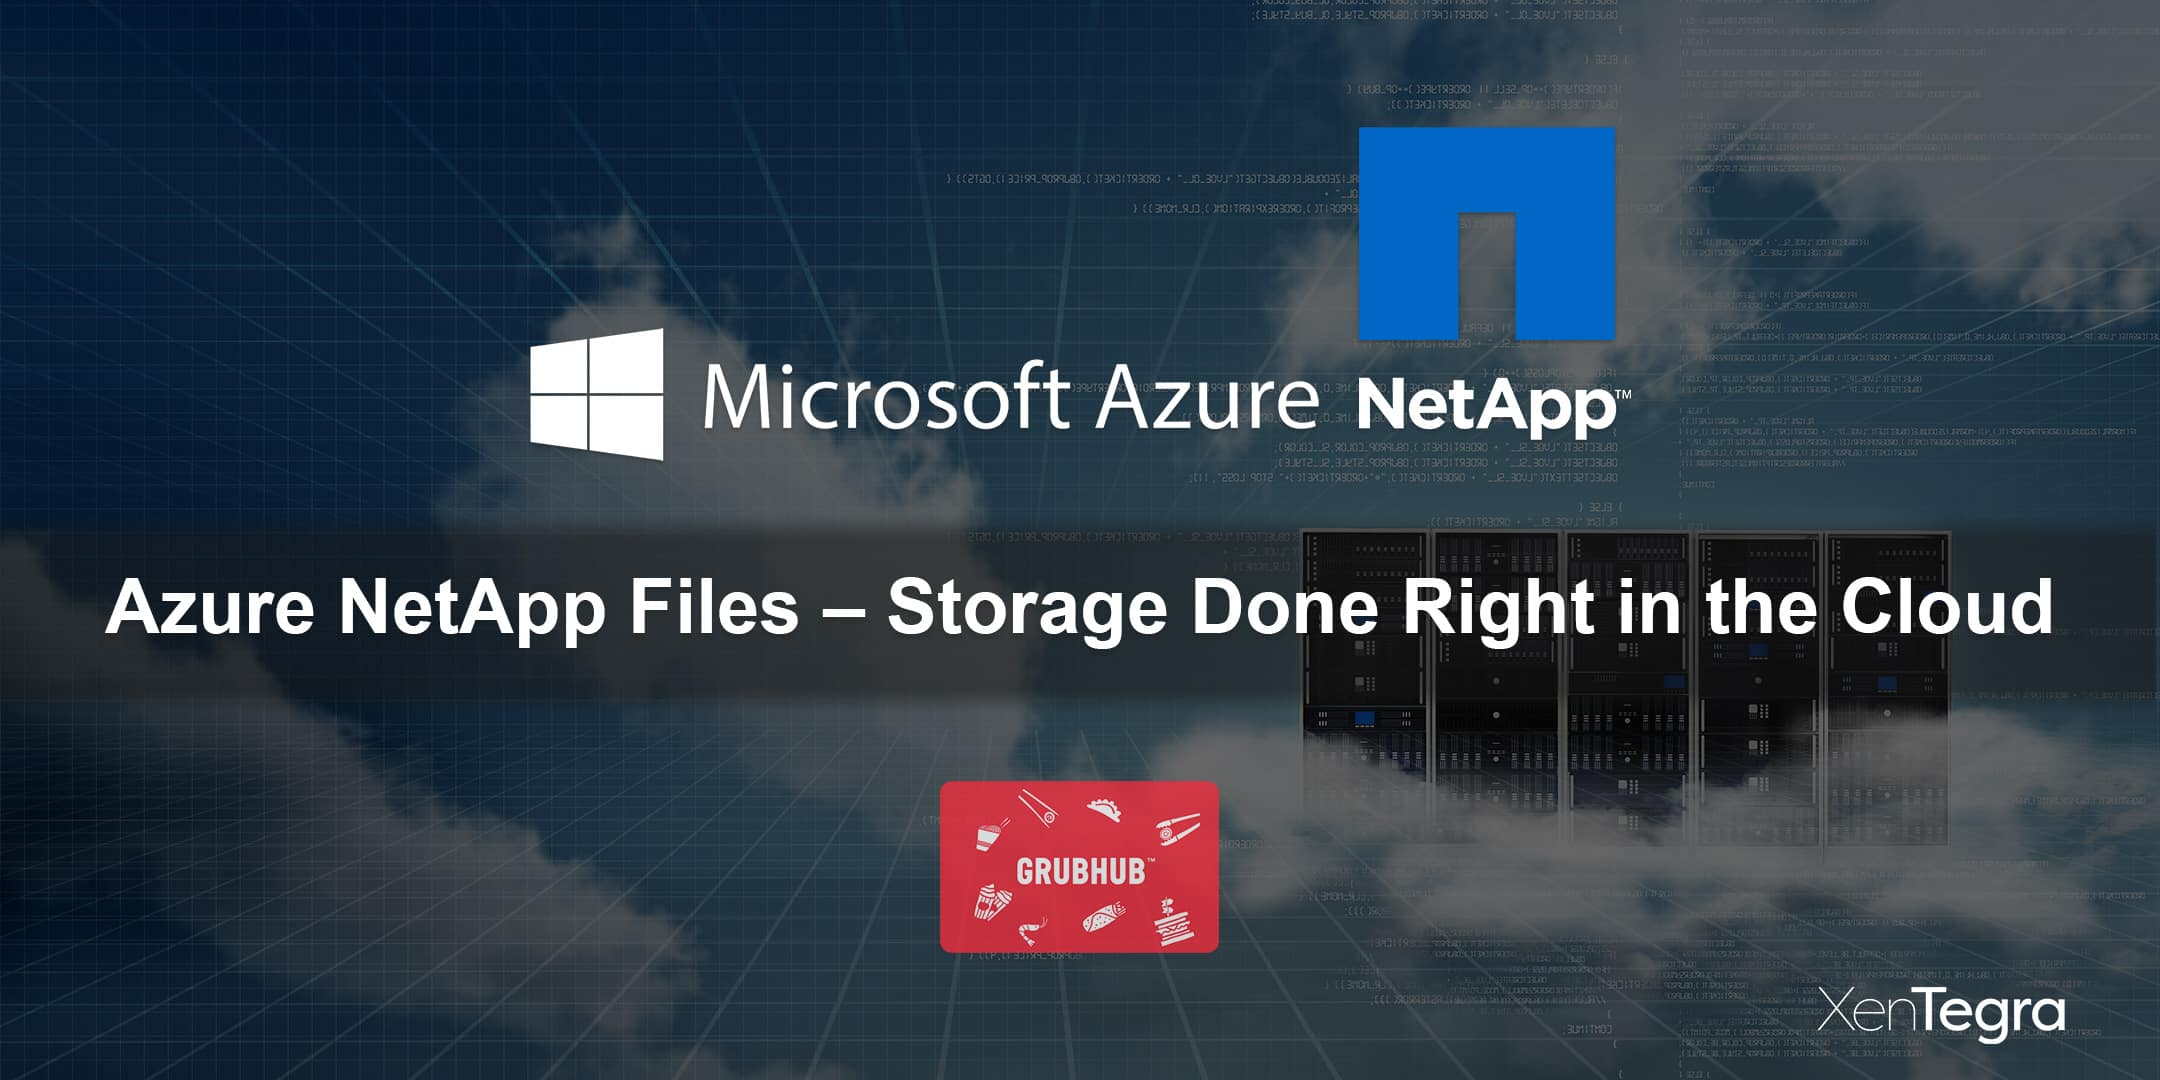 Azure NetApp Files – Storage Done Right in the Cloud